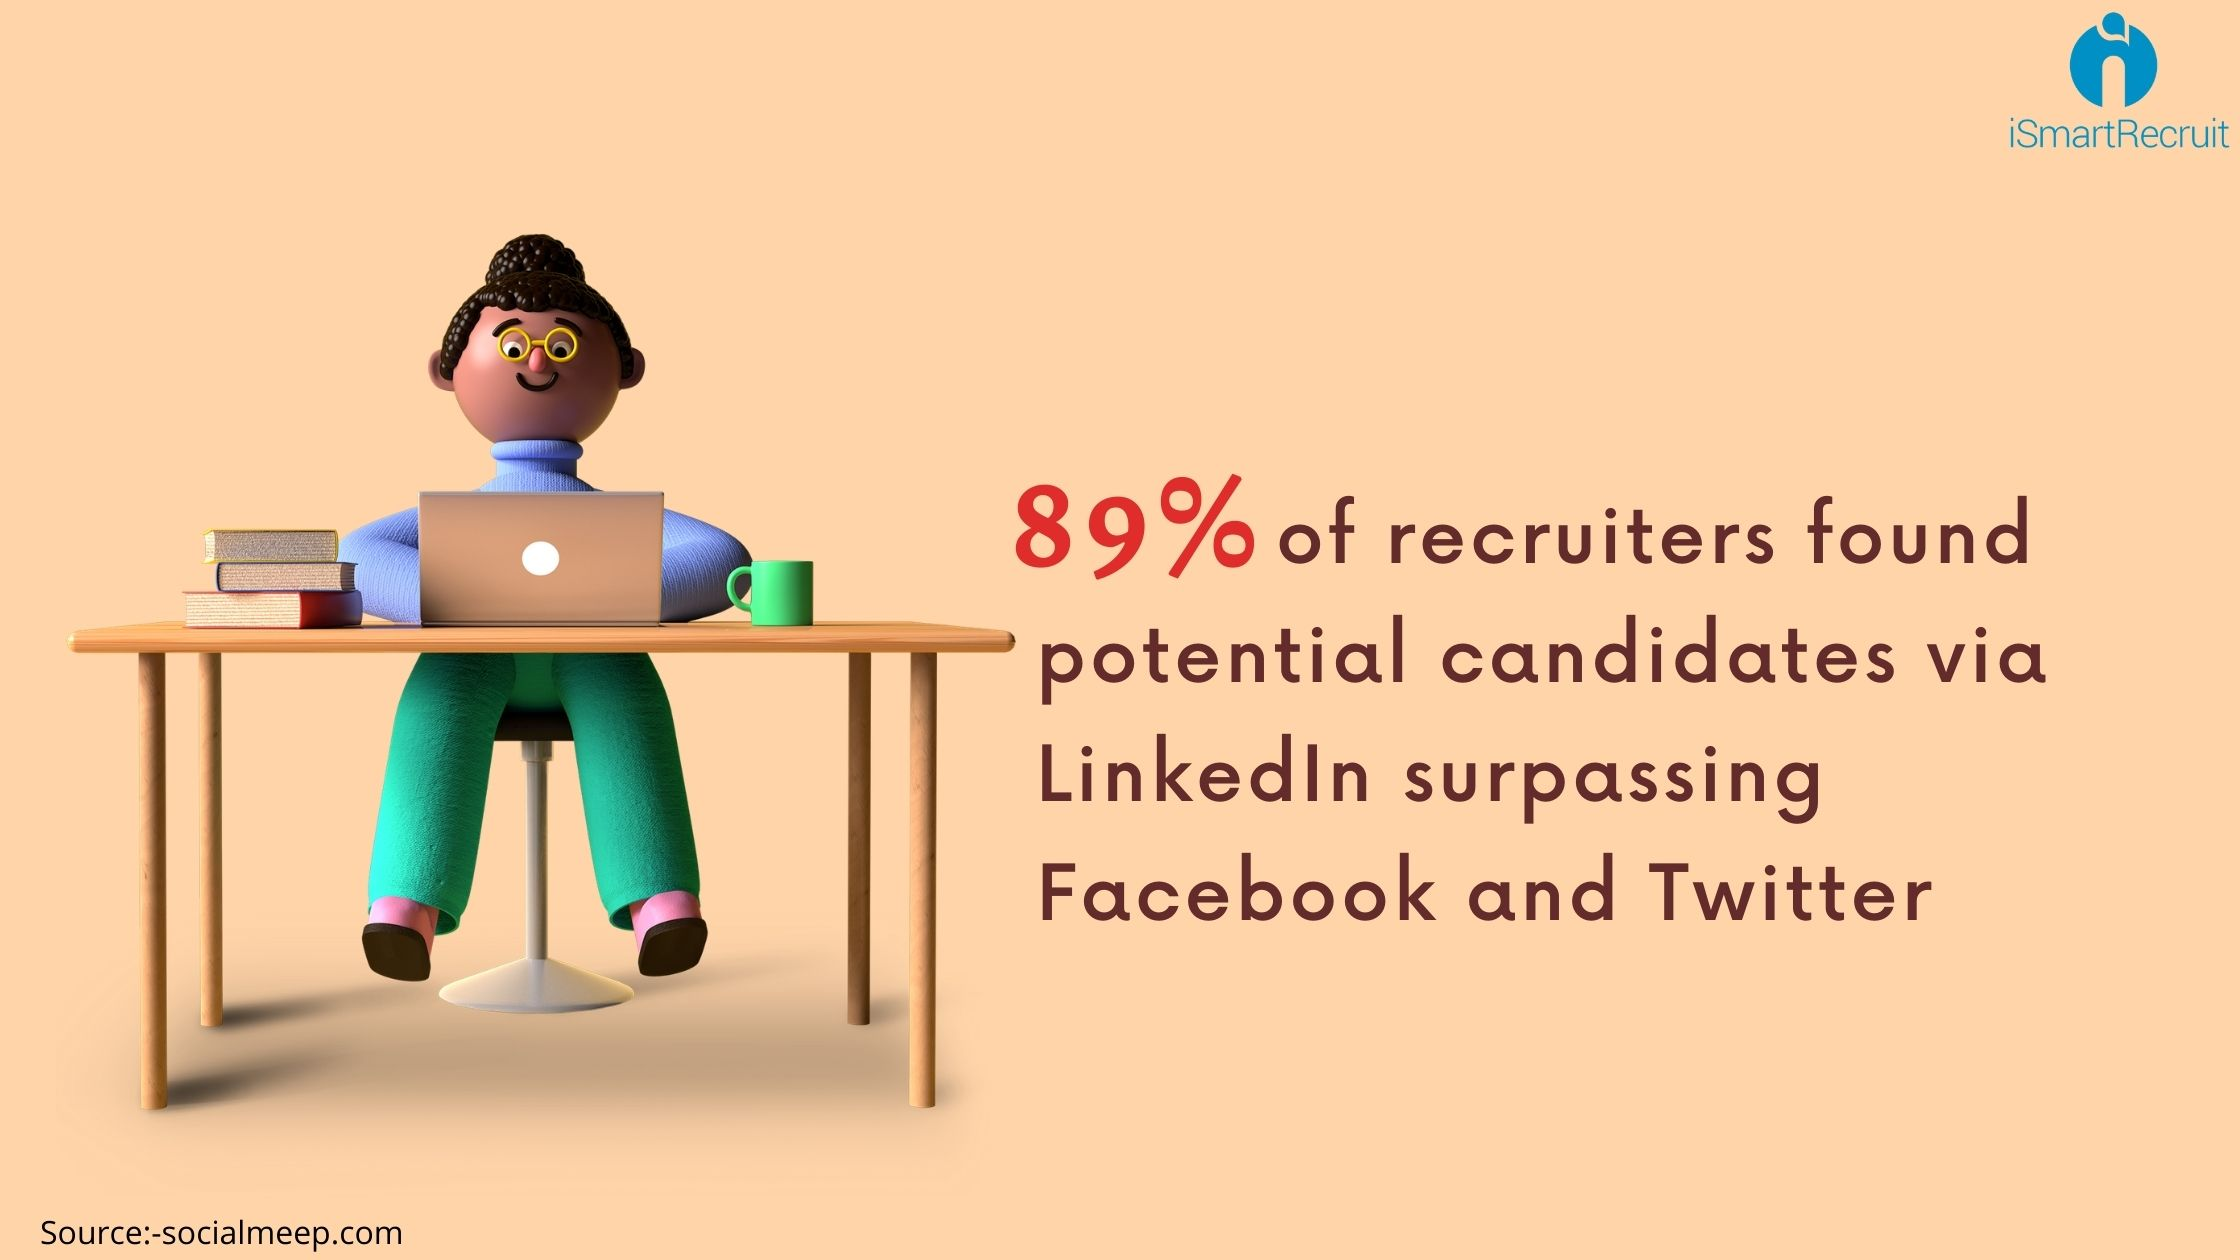 recruiters found potential candidates via LinkedIn surpassing Facebook and Twitter